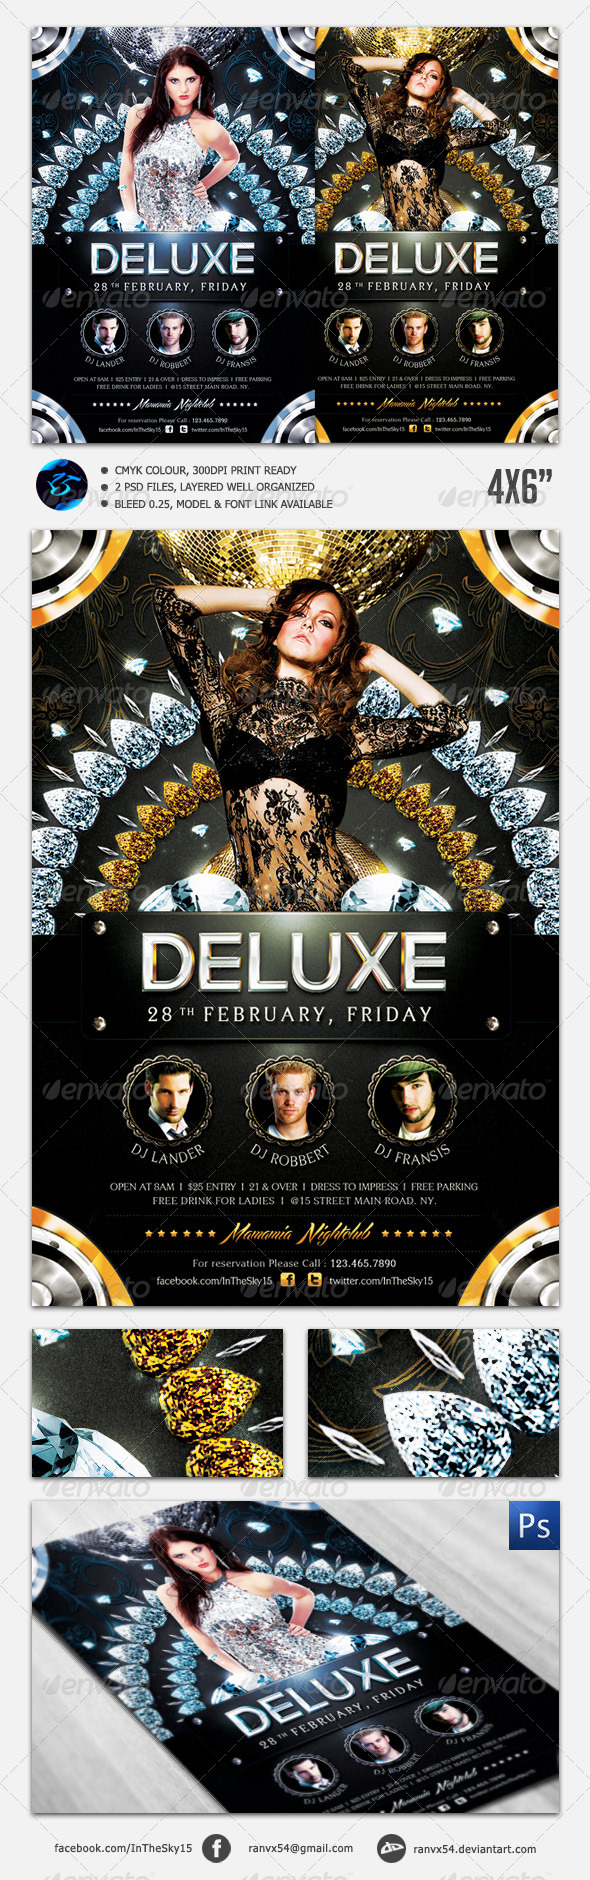 Deluxe Nightclub Flyer Template - Clubs & Parties Events